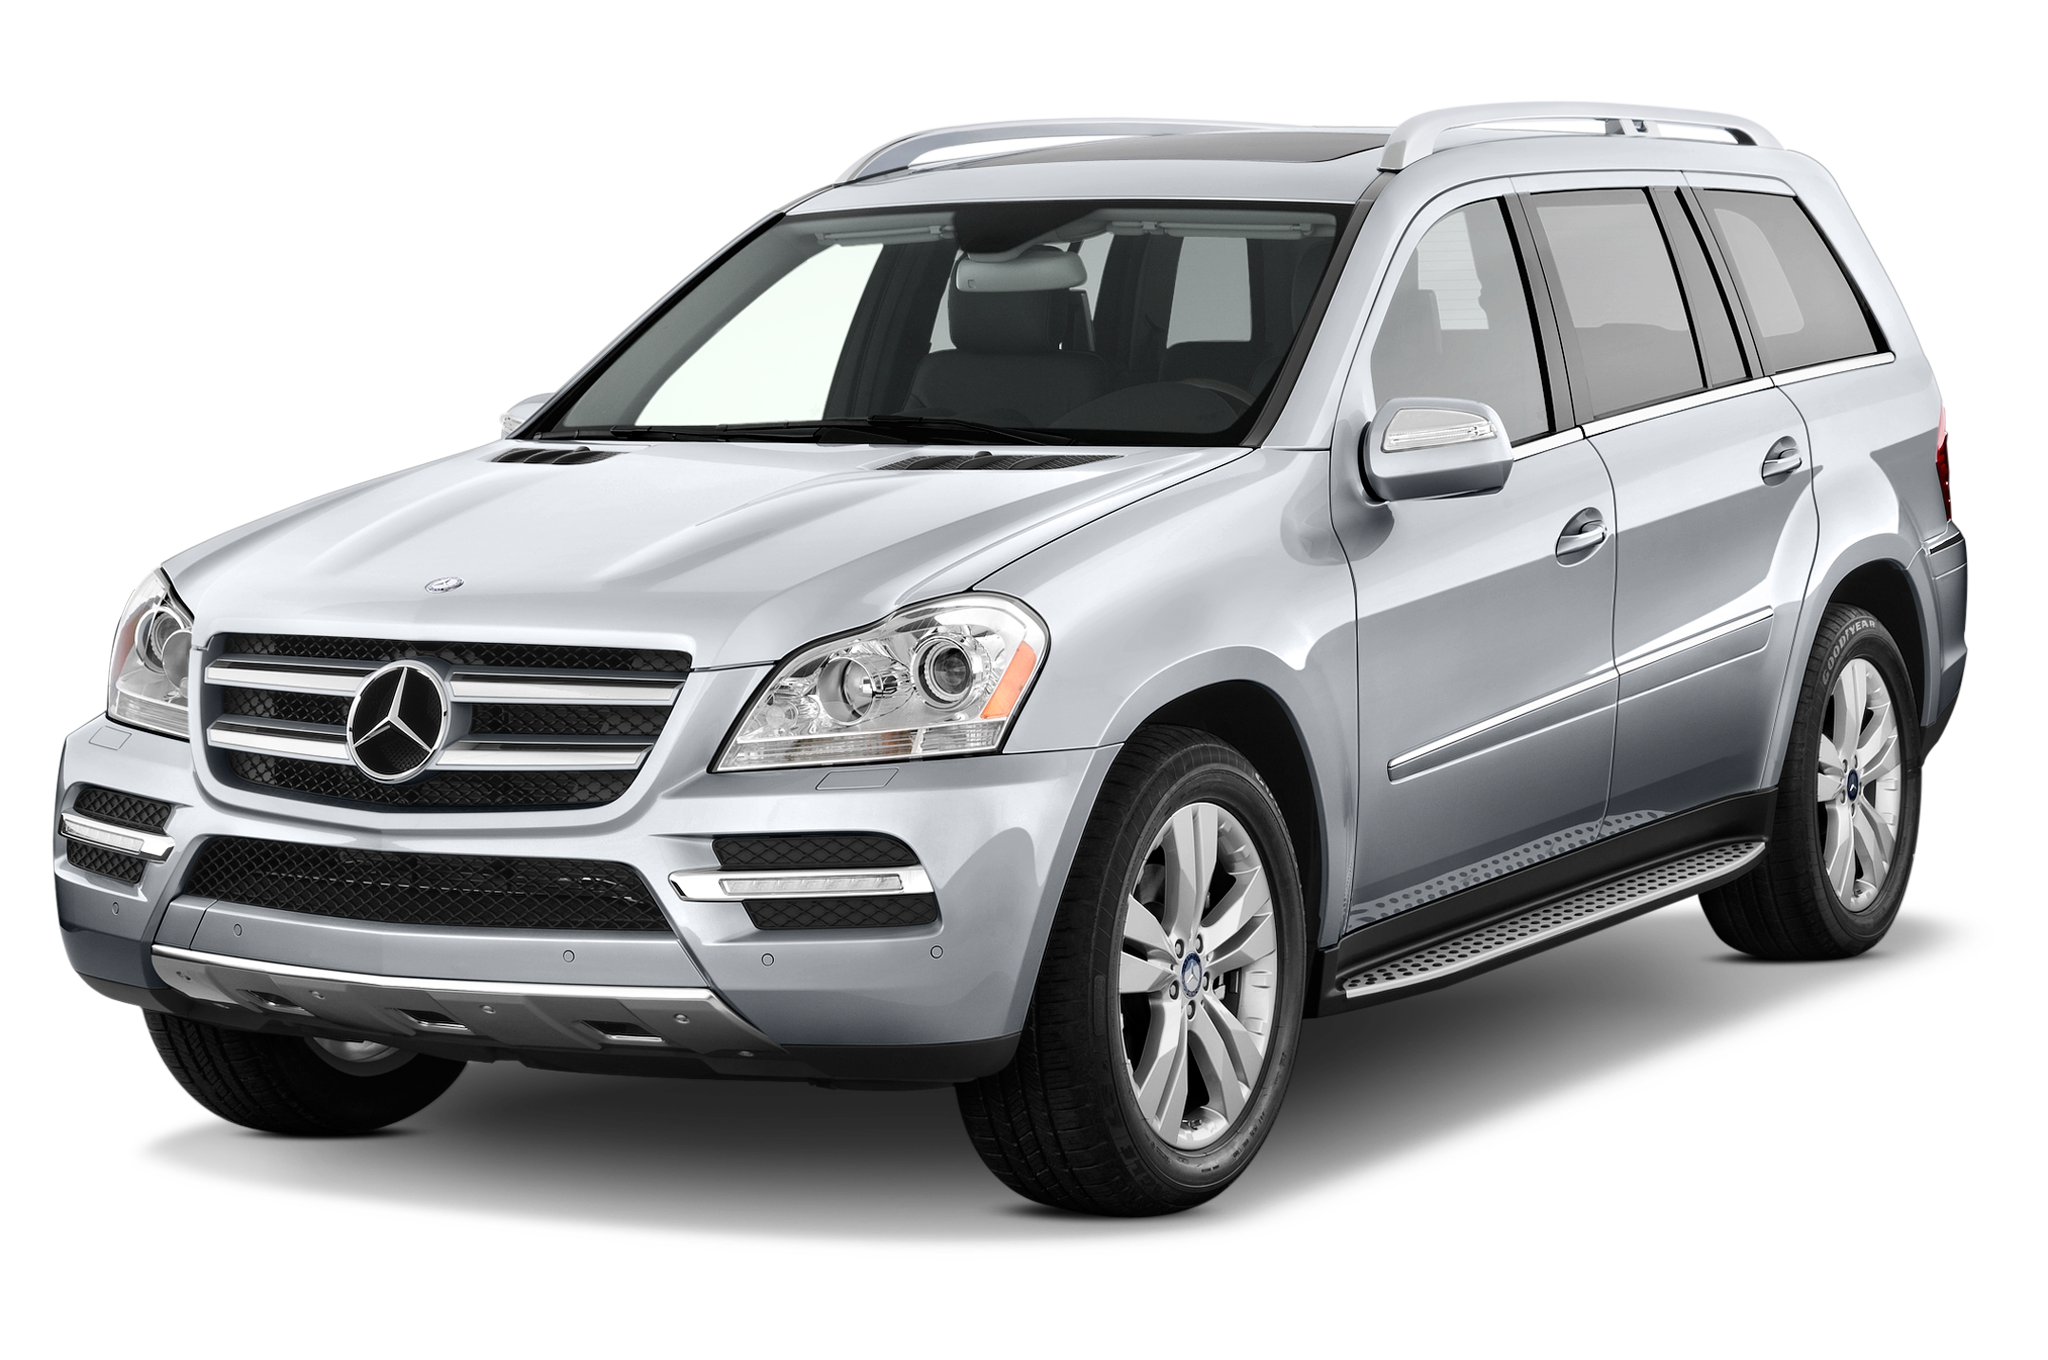 2013 Mercedes Benz Gl63 Amg Debuts With 550 Hp Twin Turbo V 8